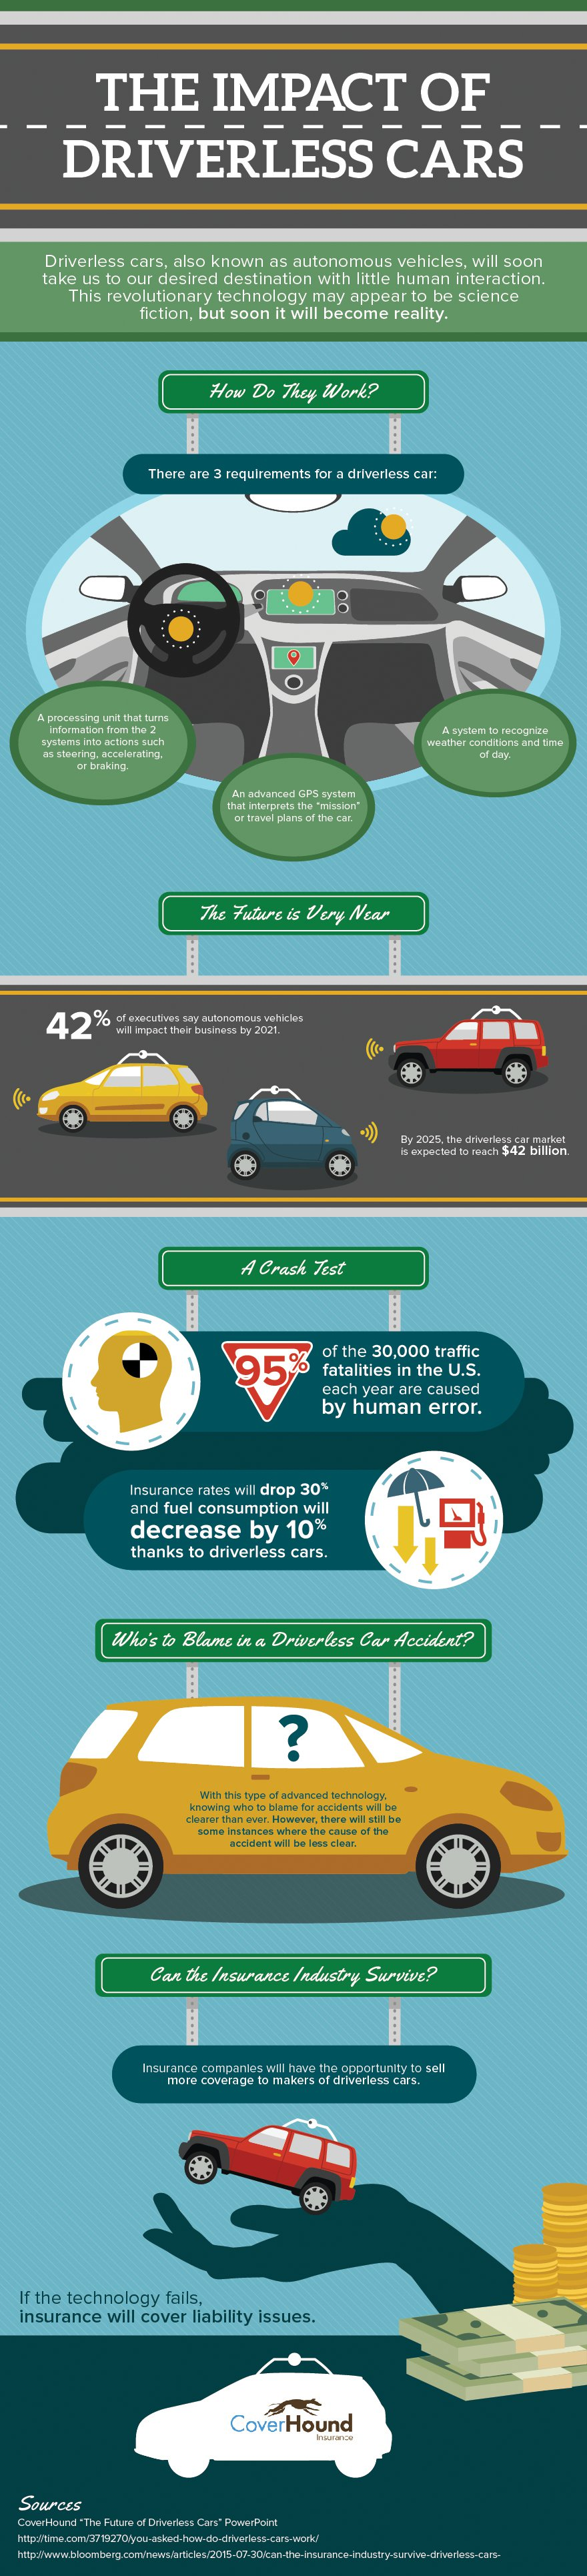 Coverhound_the_impact_of_driverless_cars_(3)